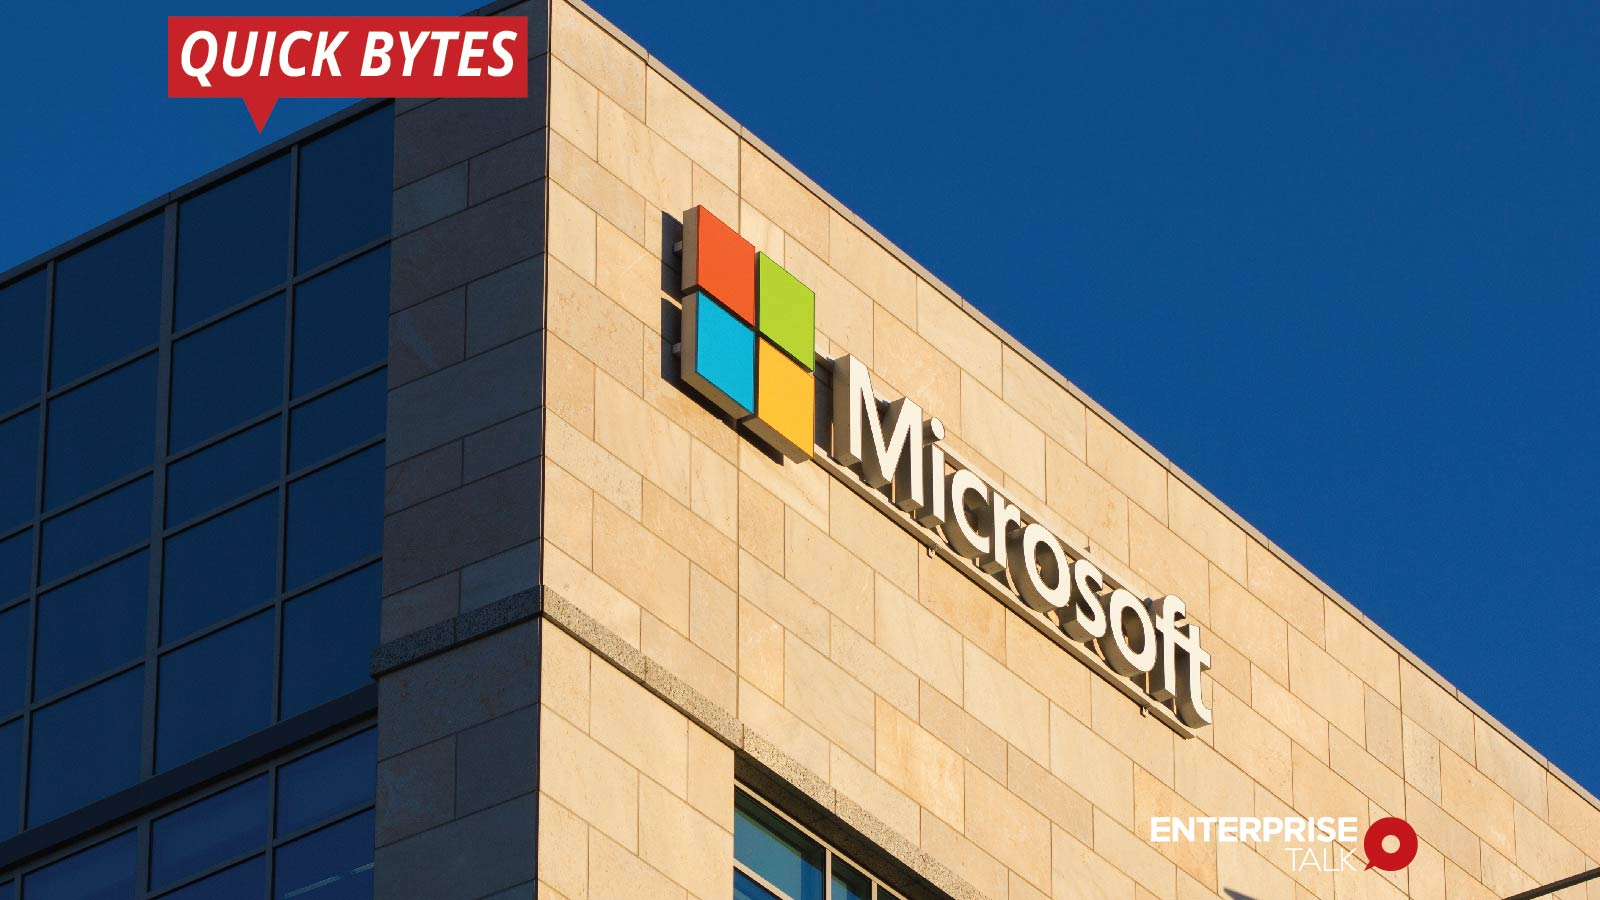 Microsoft's Cloud Business Revenue Finally Overtakes Google and AWS Combined